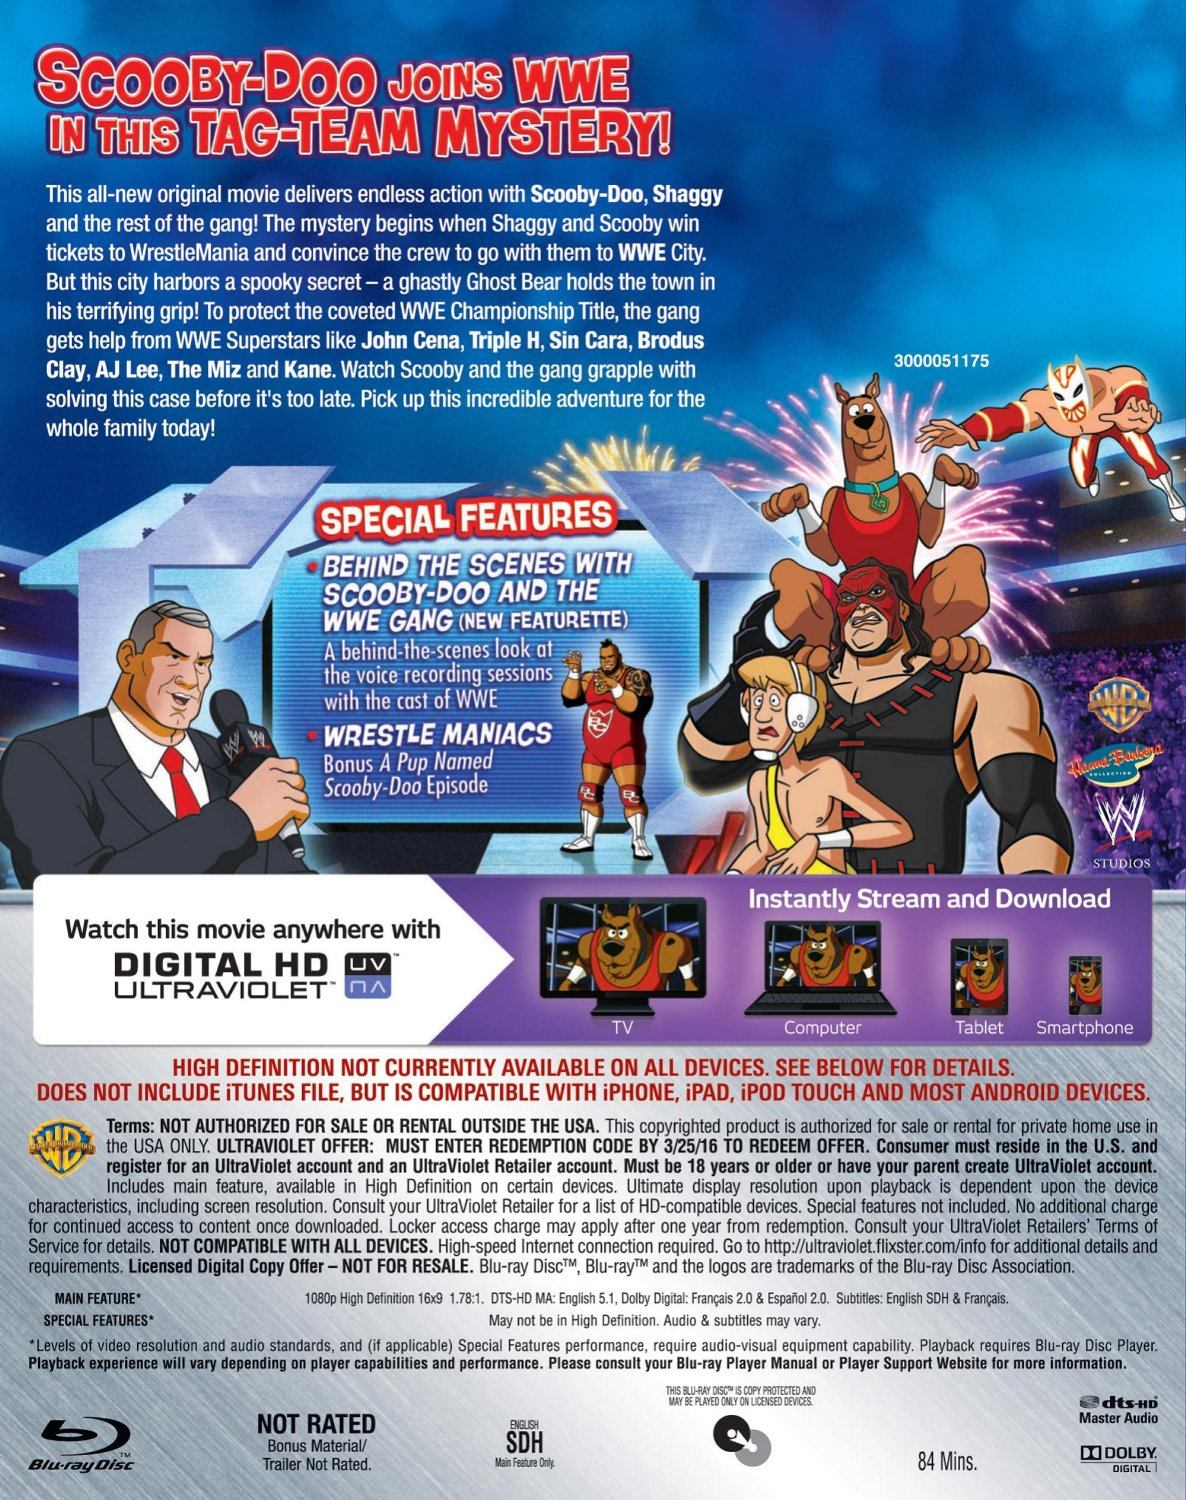 Scooby-Doo! Wrestlemania Mystery: Bonus Features & Merchandise Coming Soon